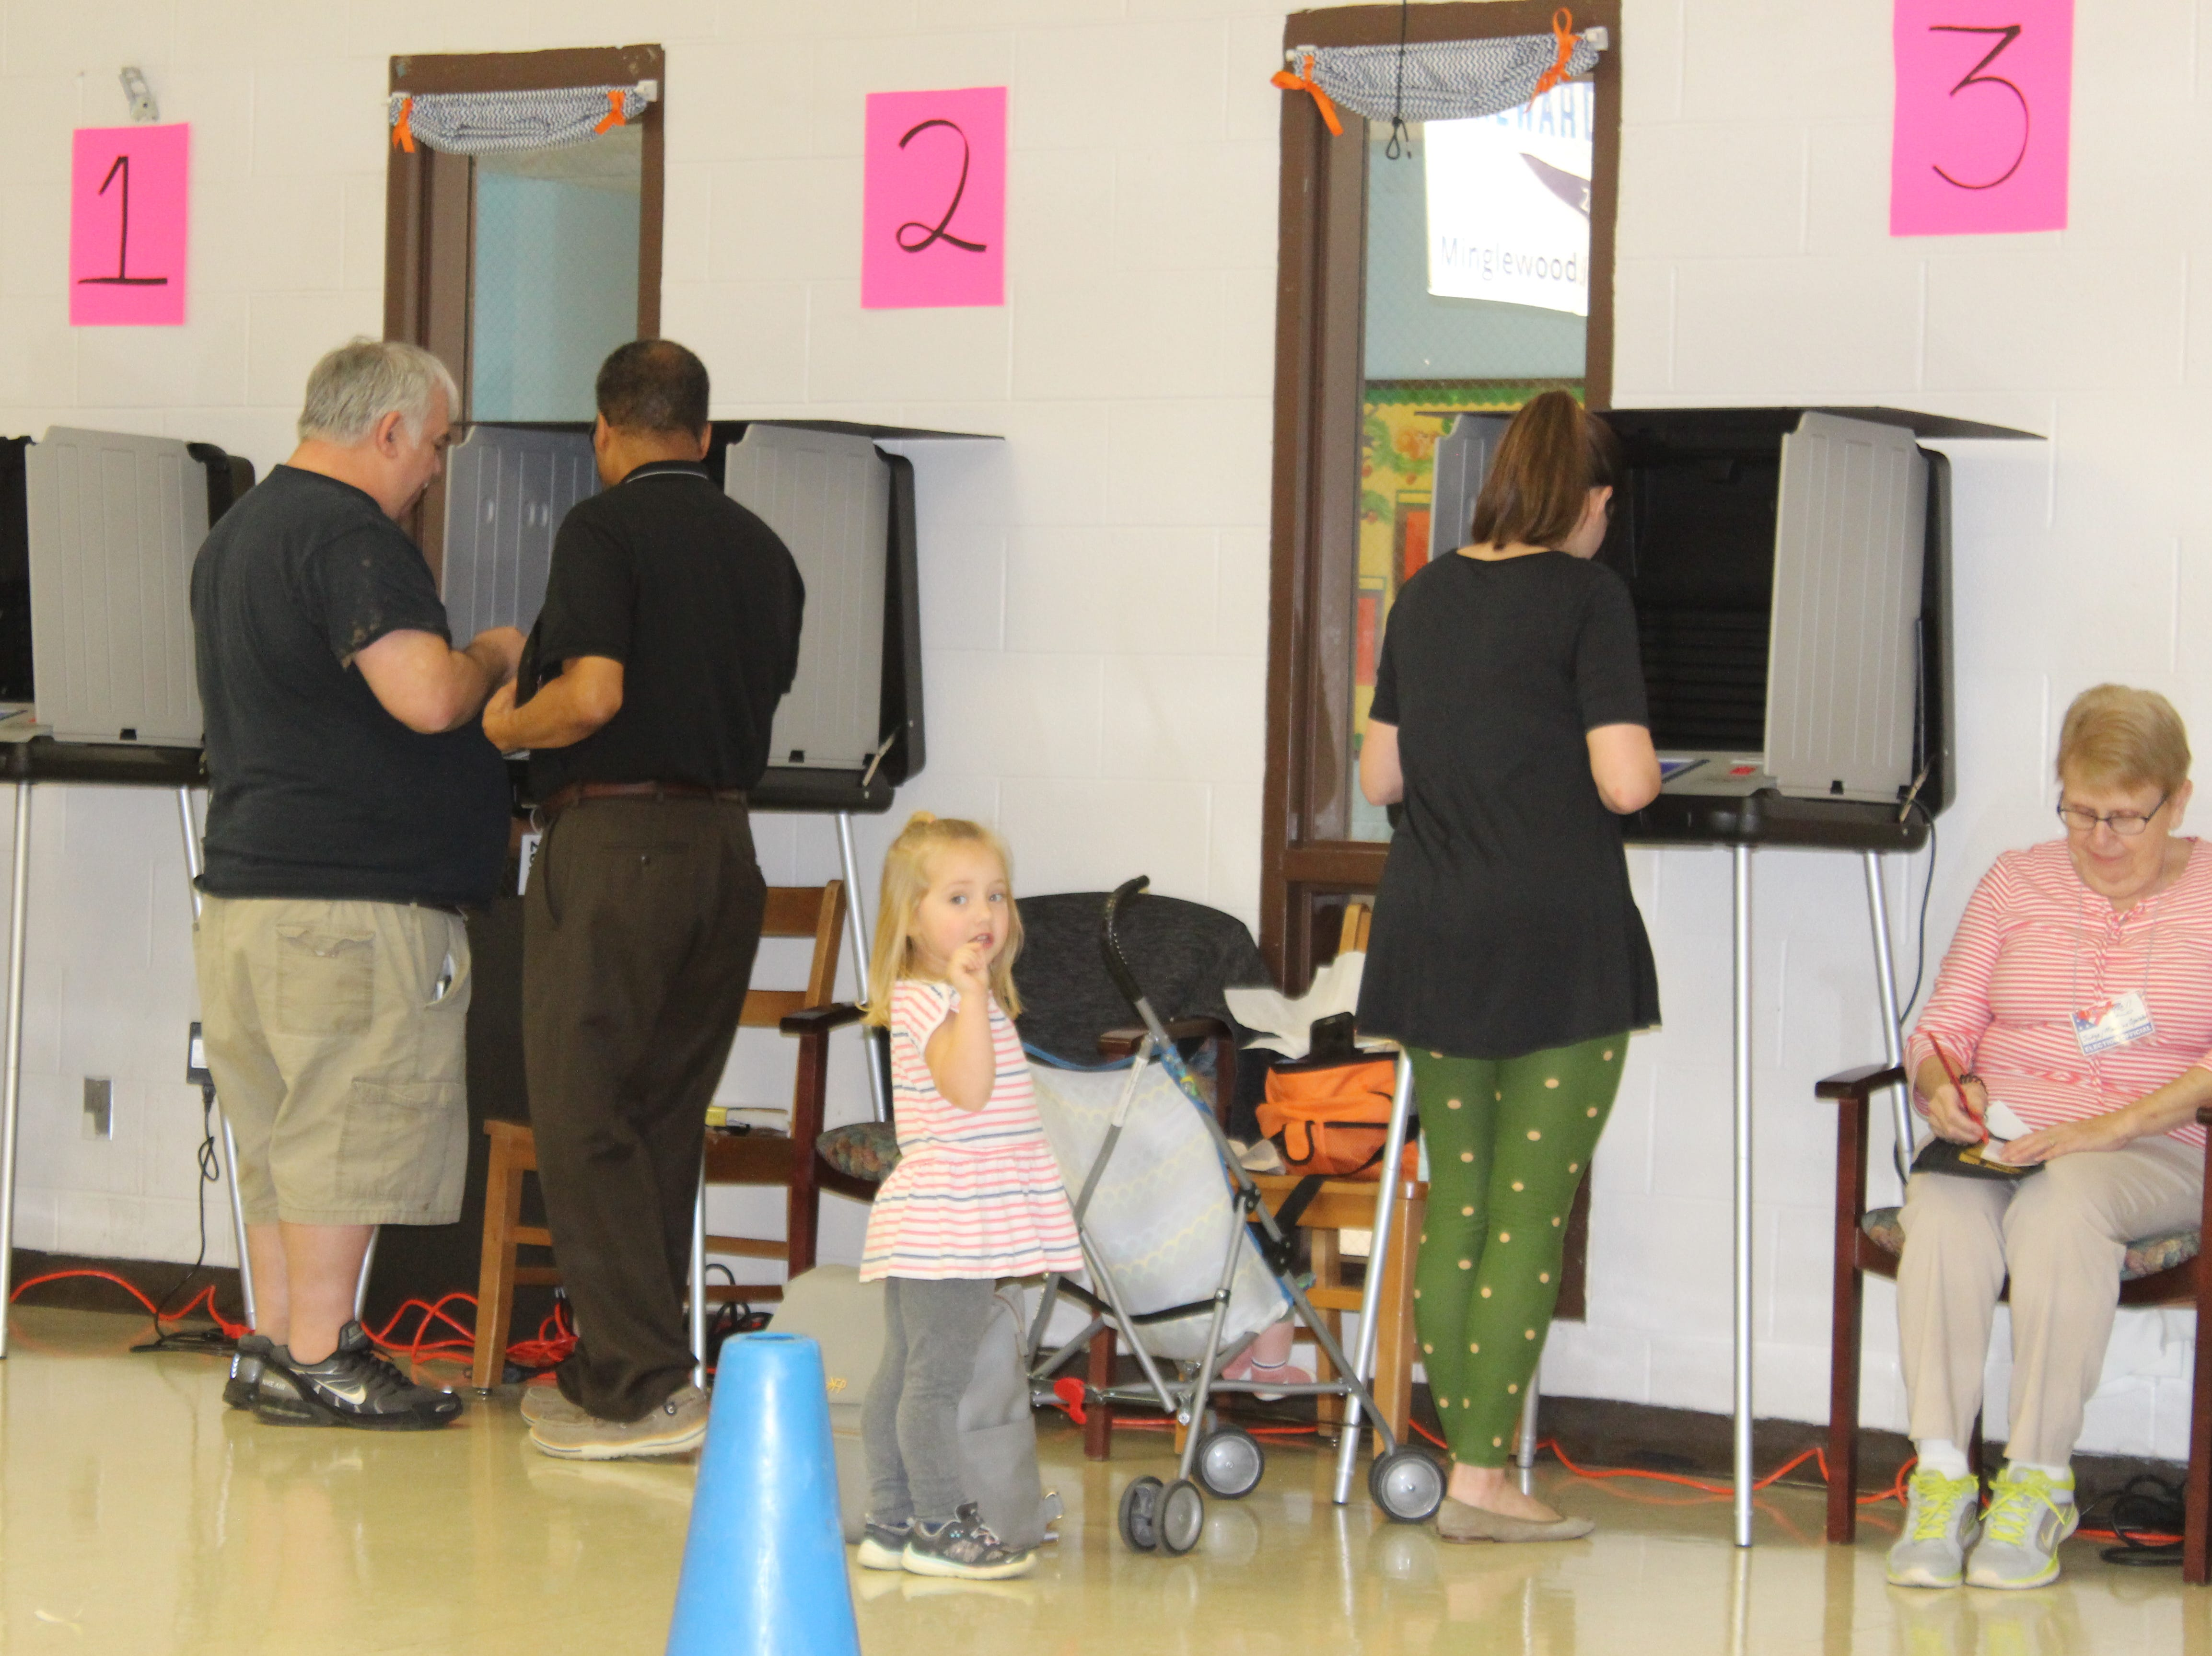 Voters at Minglewood Elementary in Clarksville on election day, Nov. 6.